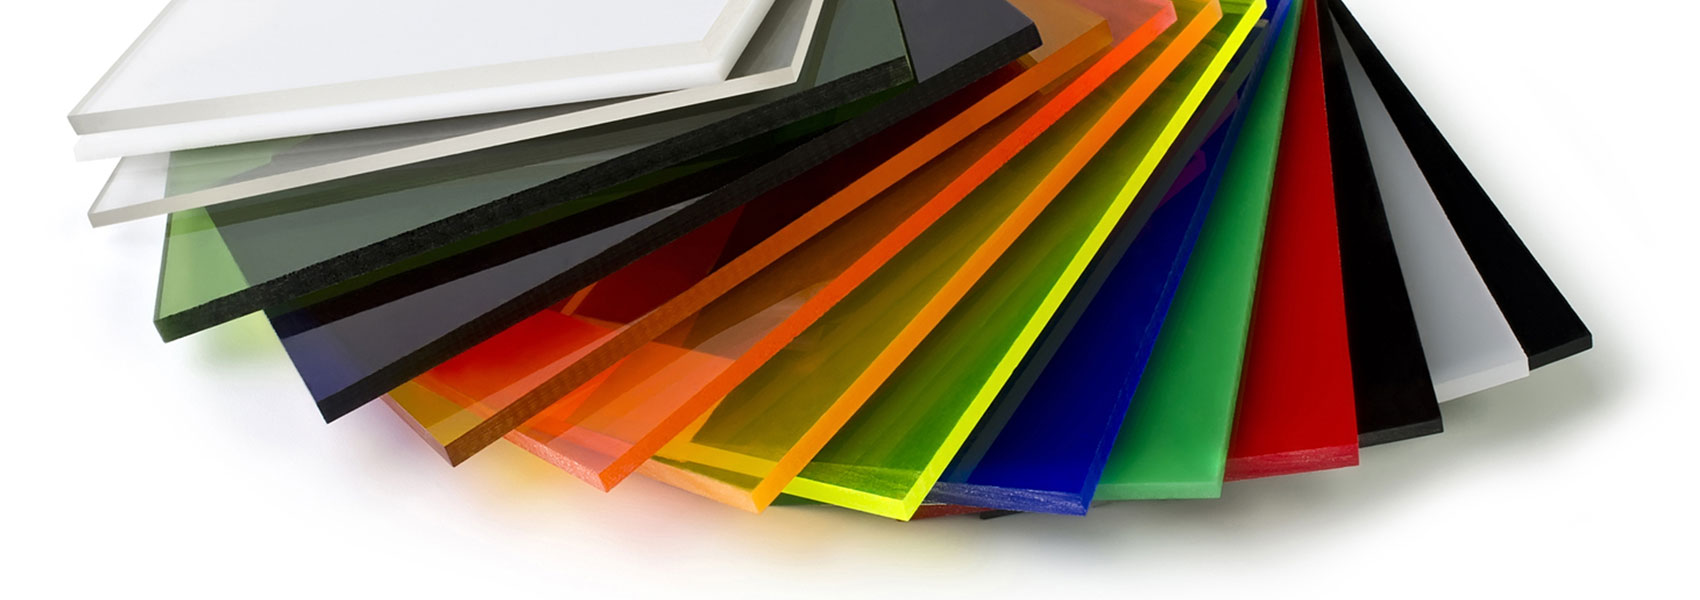 We sell all plastic and aluminium composite materials to public,trade and business